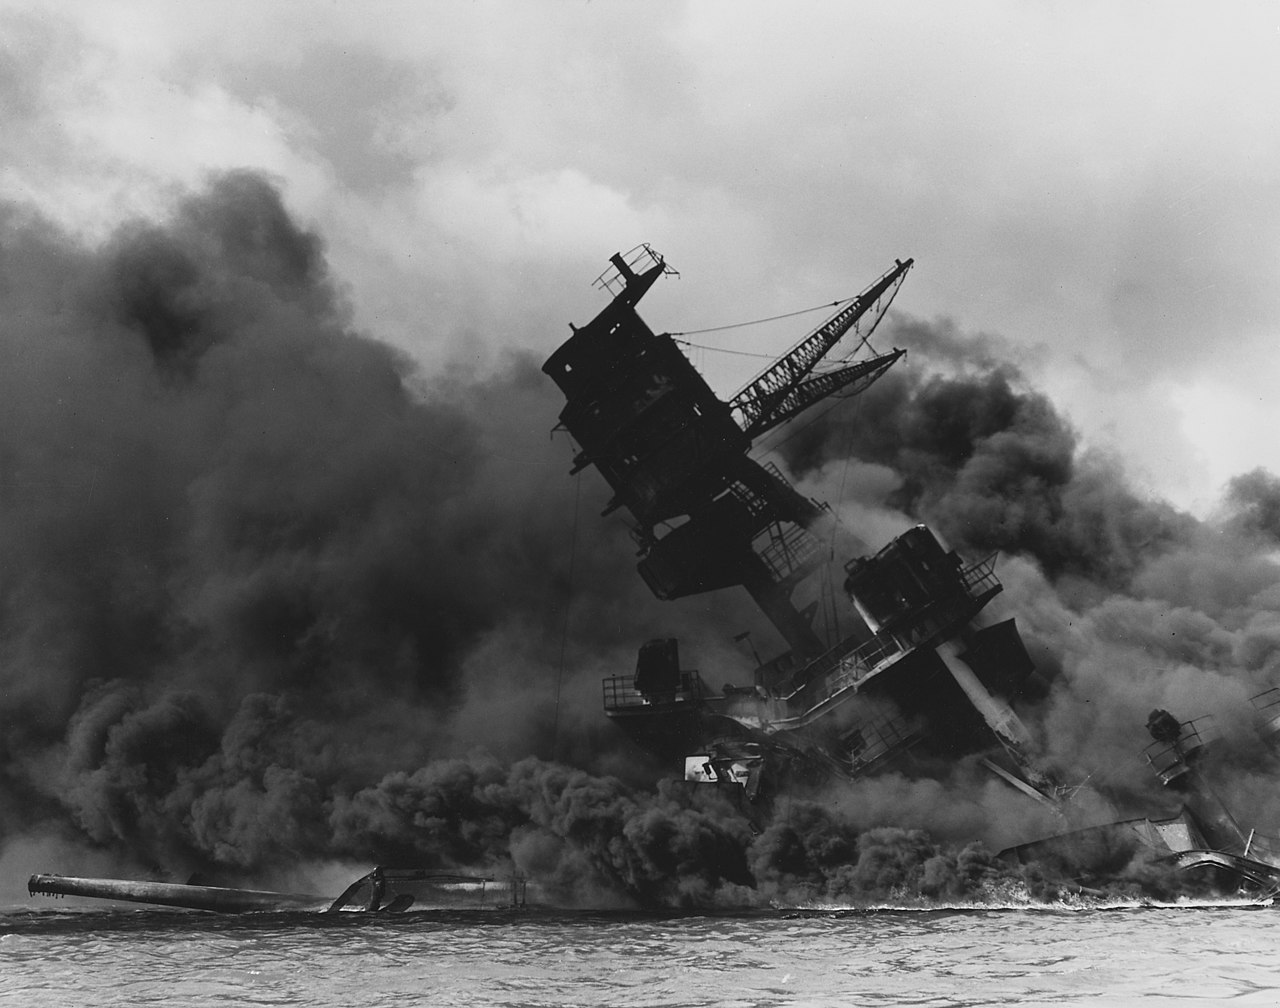 http://upload.wikimedia.org/wikipedia/commons/thumb/7/7c/USSArizona_PearlHarbor_2.jpg/1280px-USSArizona_PearlHarbor_2.jpg